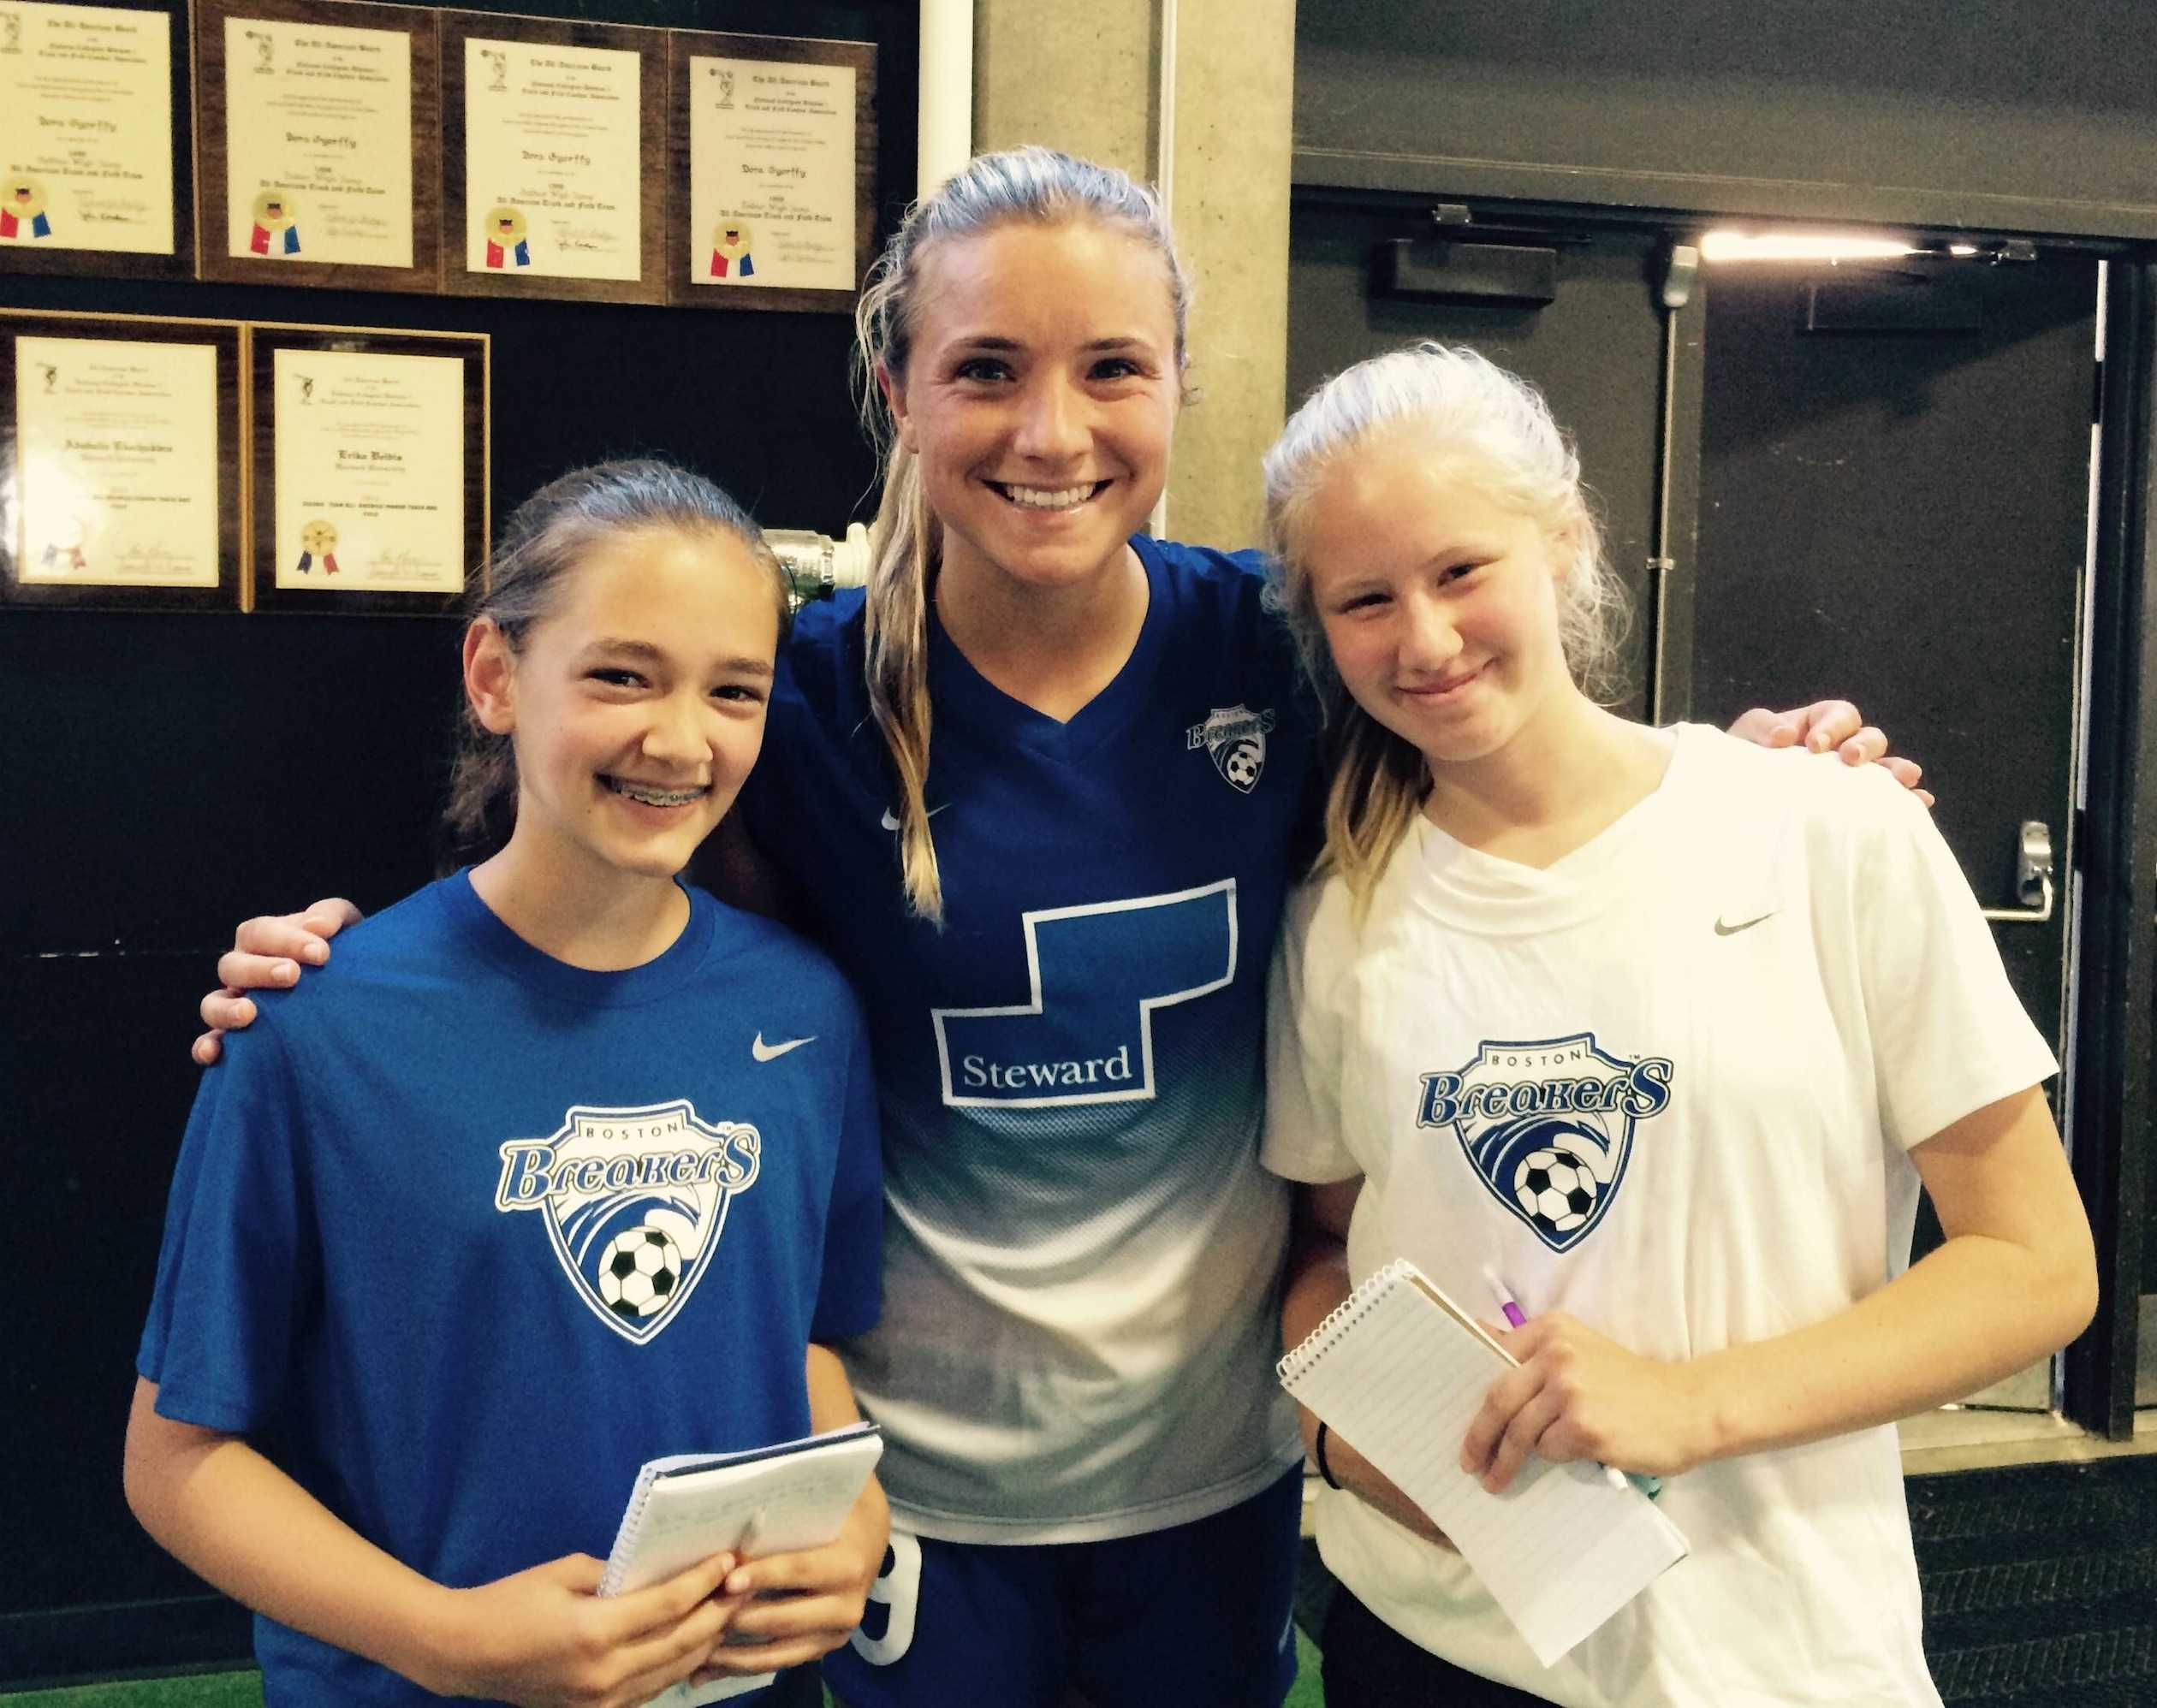 Kristie Mewis of the Boston Breakers (center) poses with reporters from the Watertown Splash newspaper following the Breakers' 3-2 loss to the Seattle Reign on June 21, 2015.